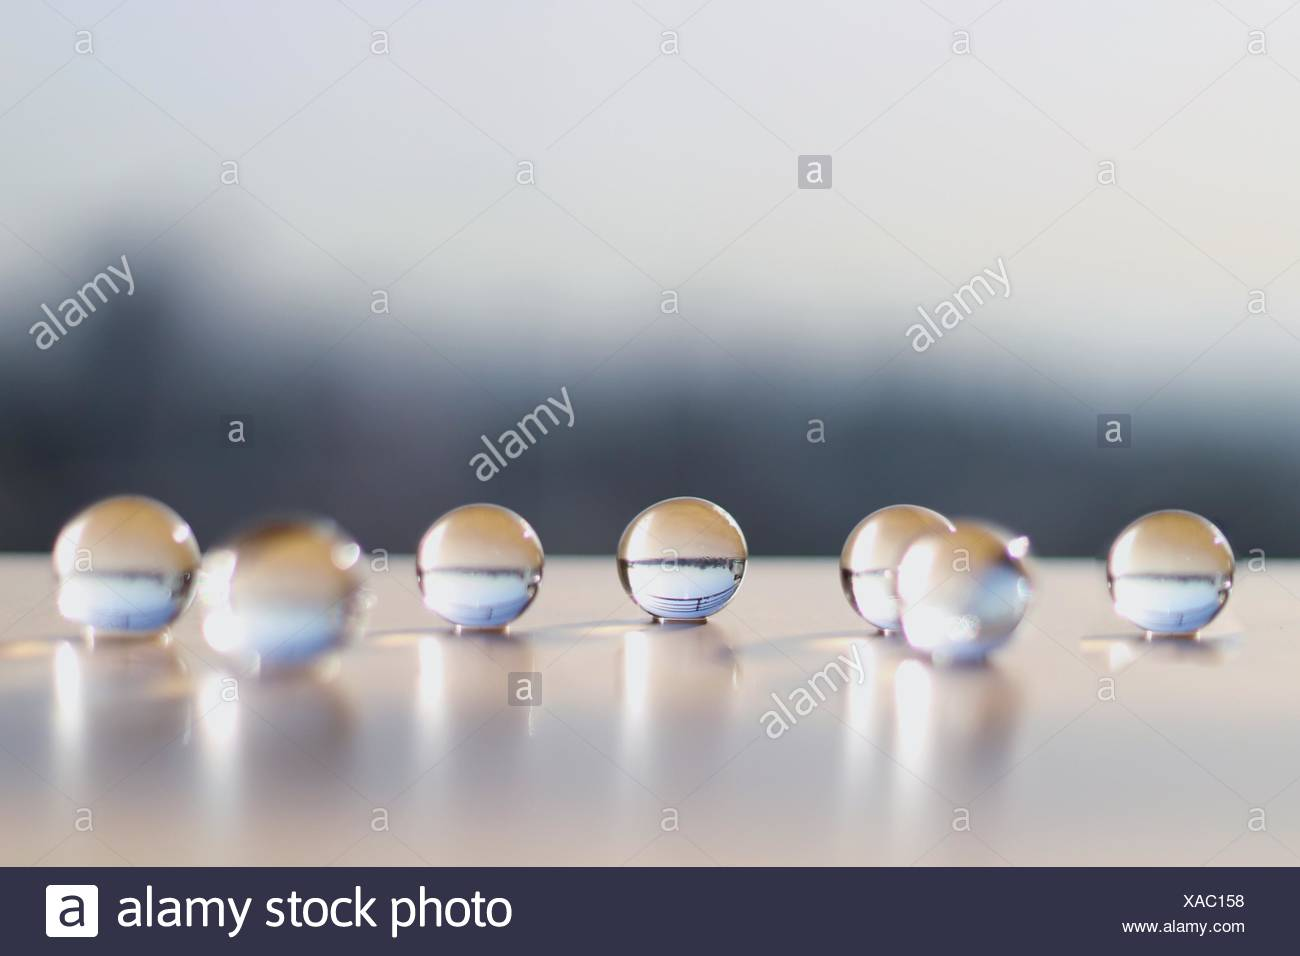 Close-Up Of Glass Marbles On Table - Stock Image